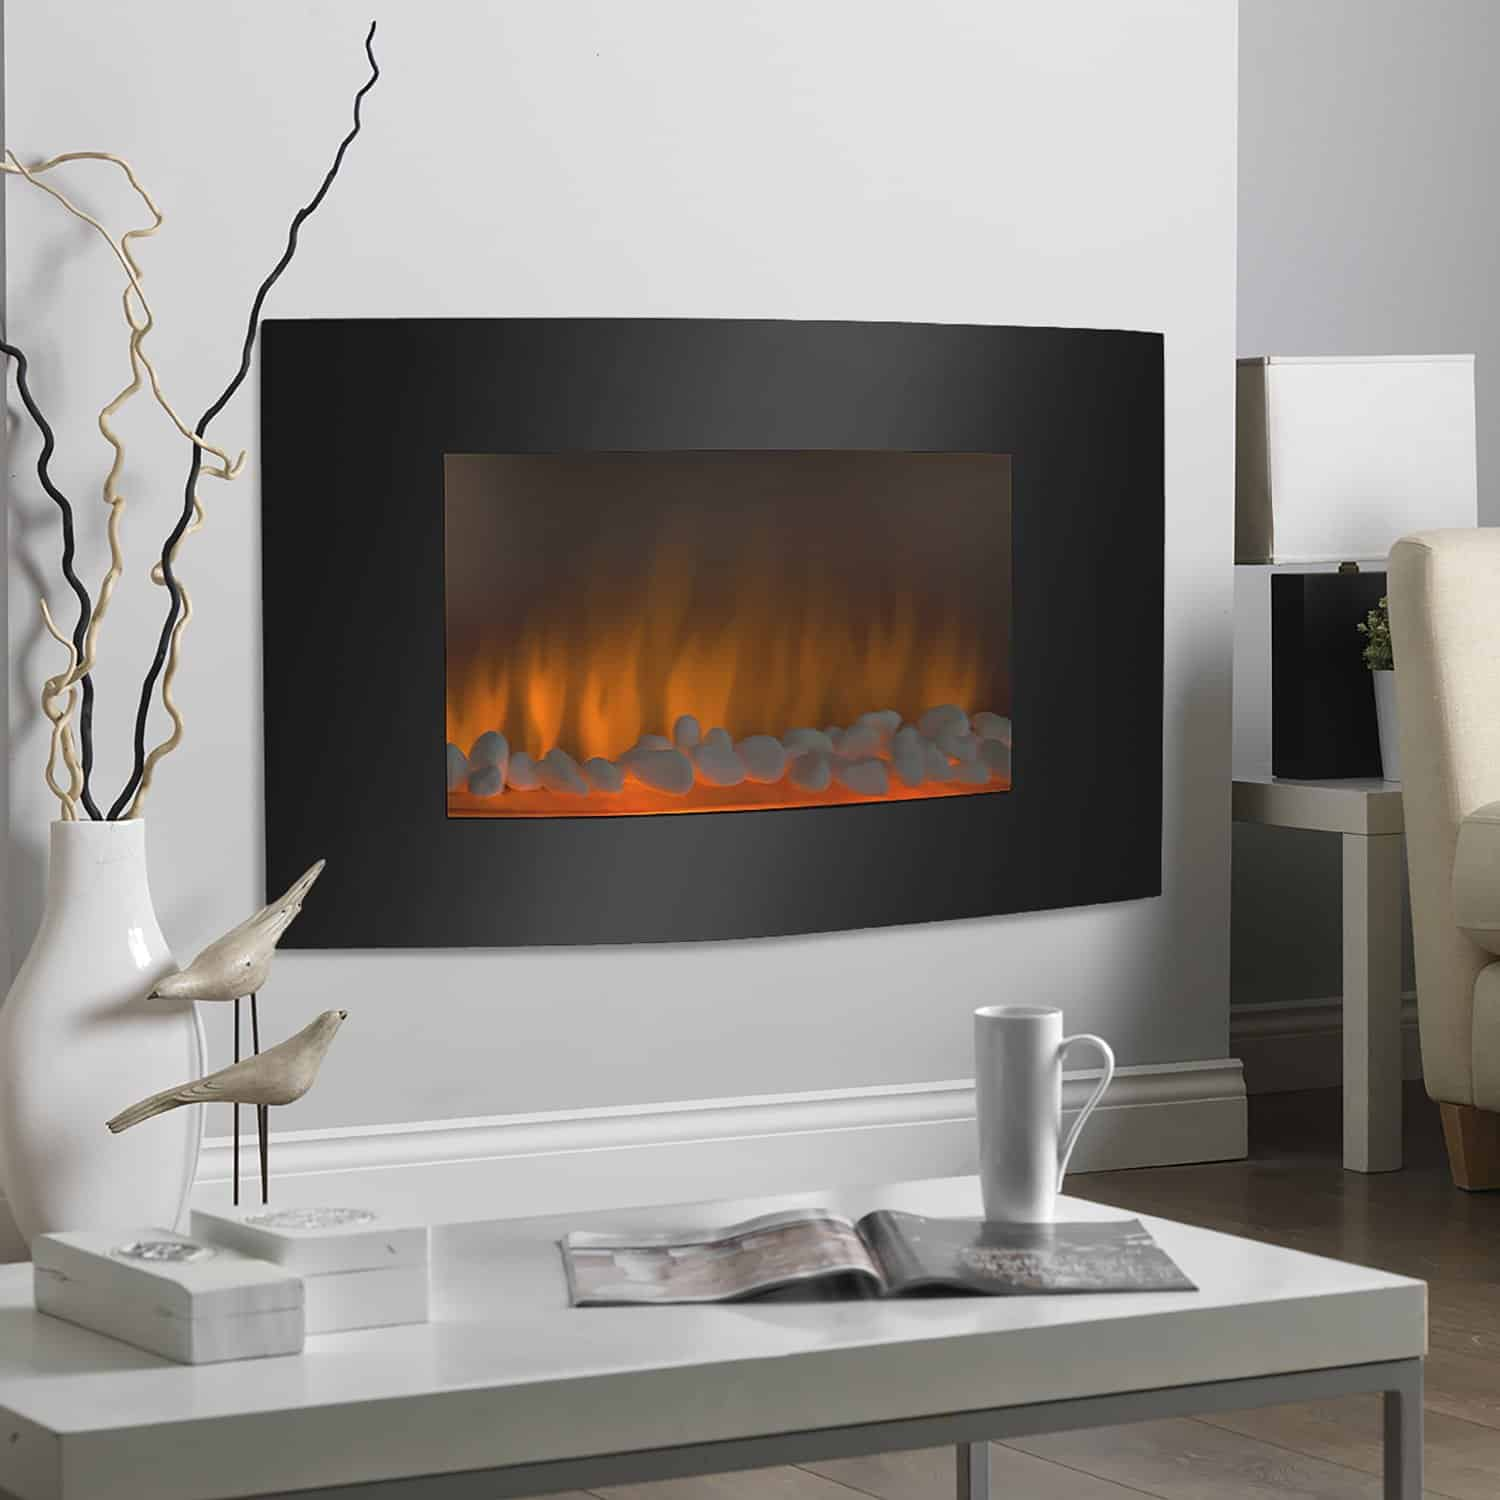 fuel mounted download idolproject wall mount gel fireplace me